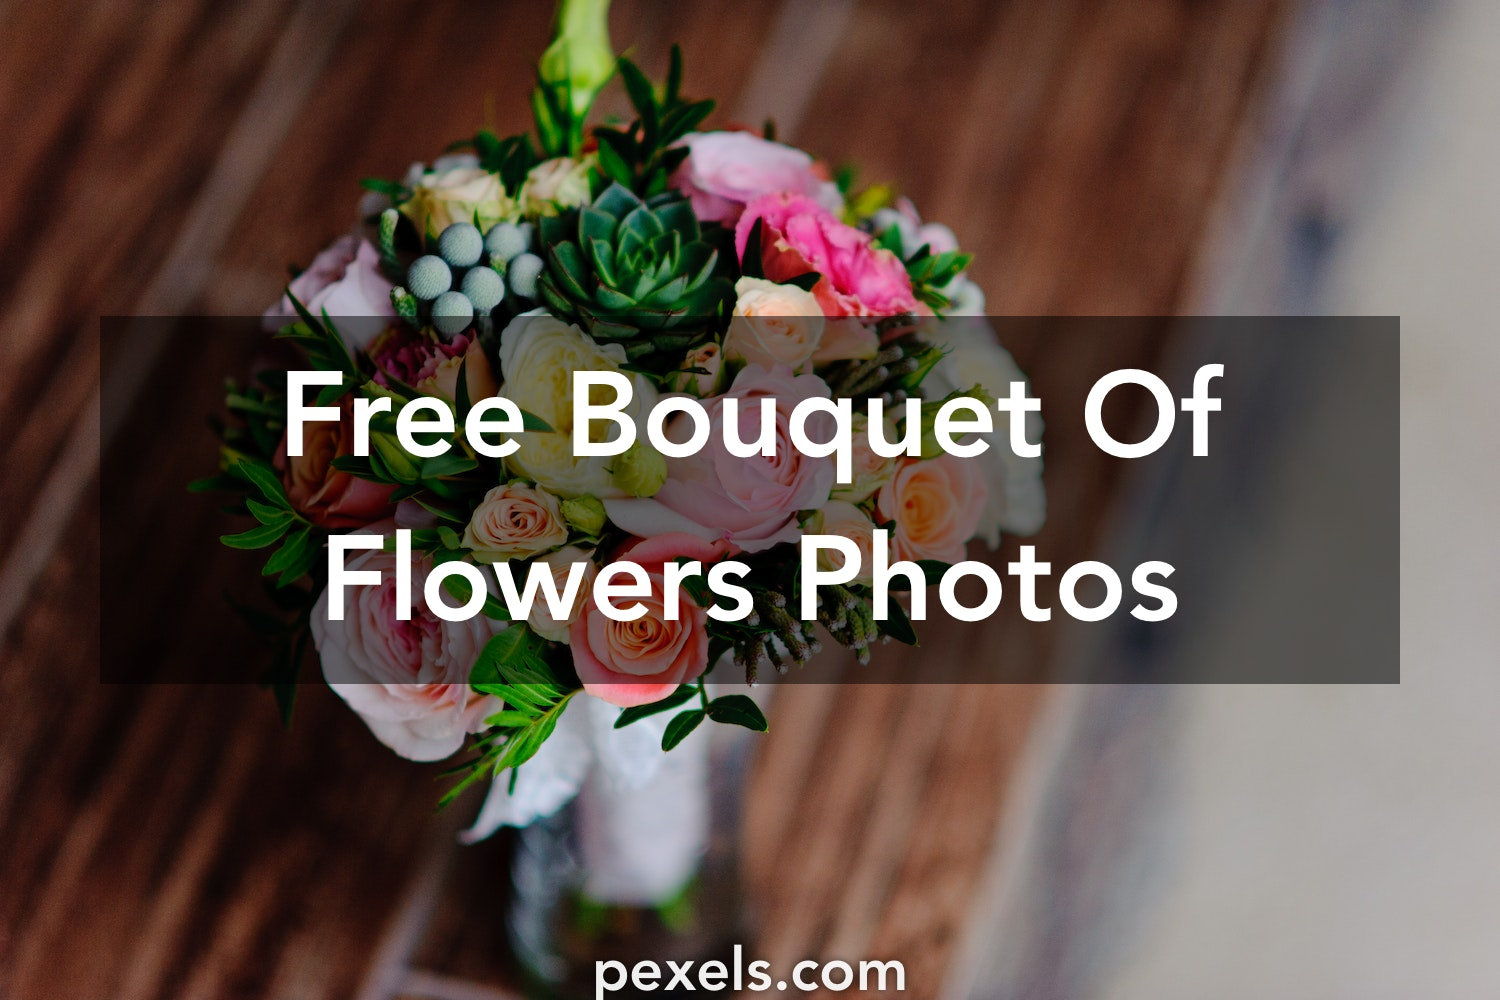 1000+ Beautiful Bouquet Of Flowers Photos · Pexels · Free Stock Photos